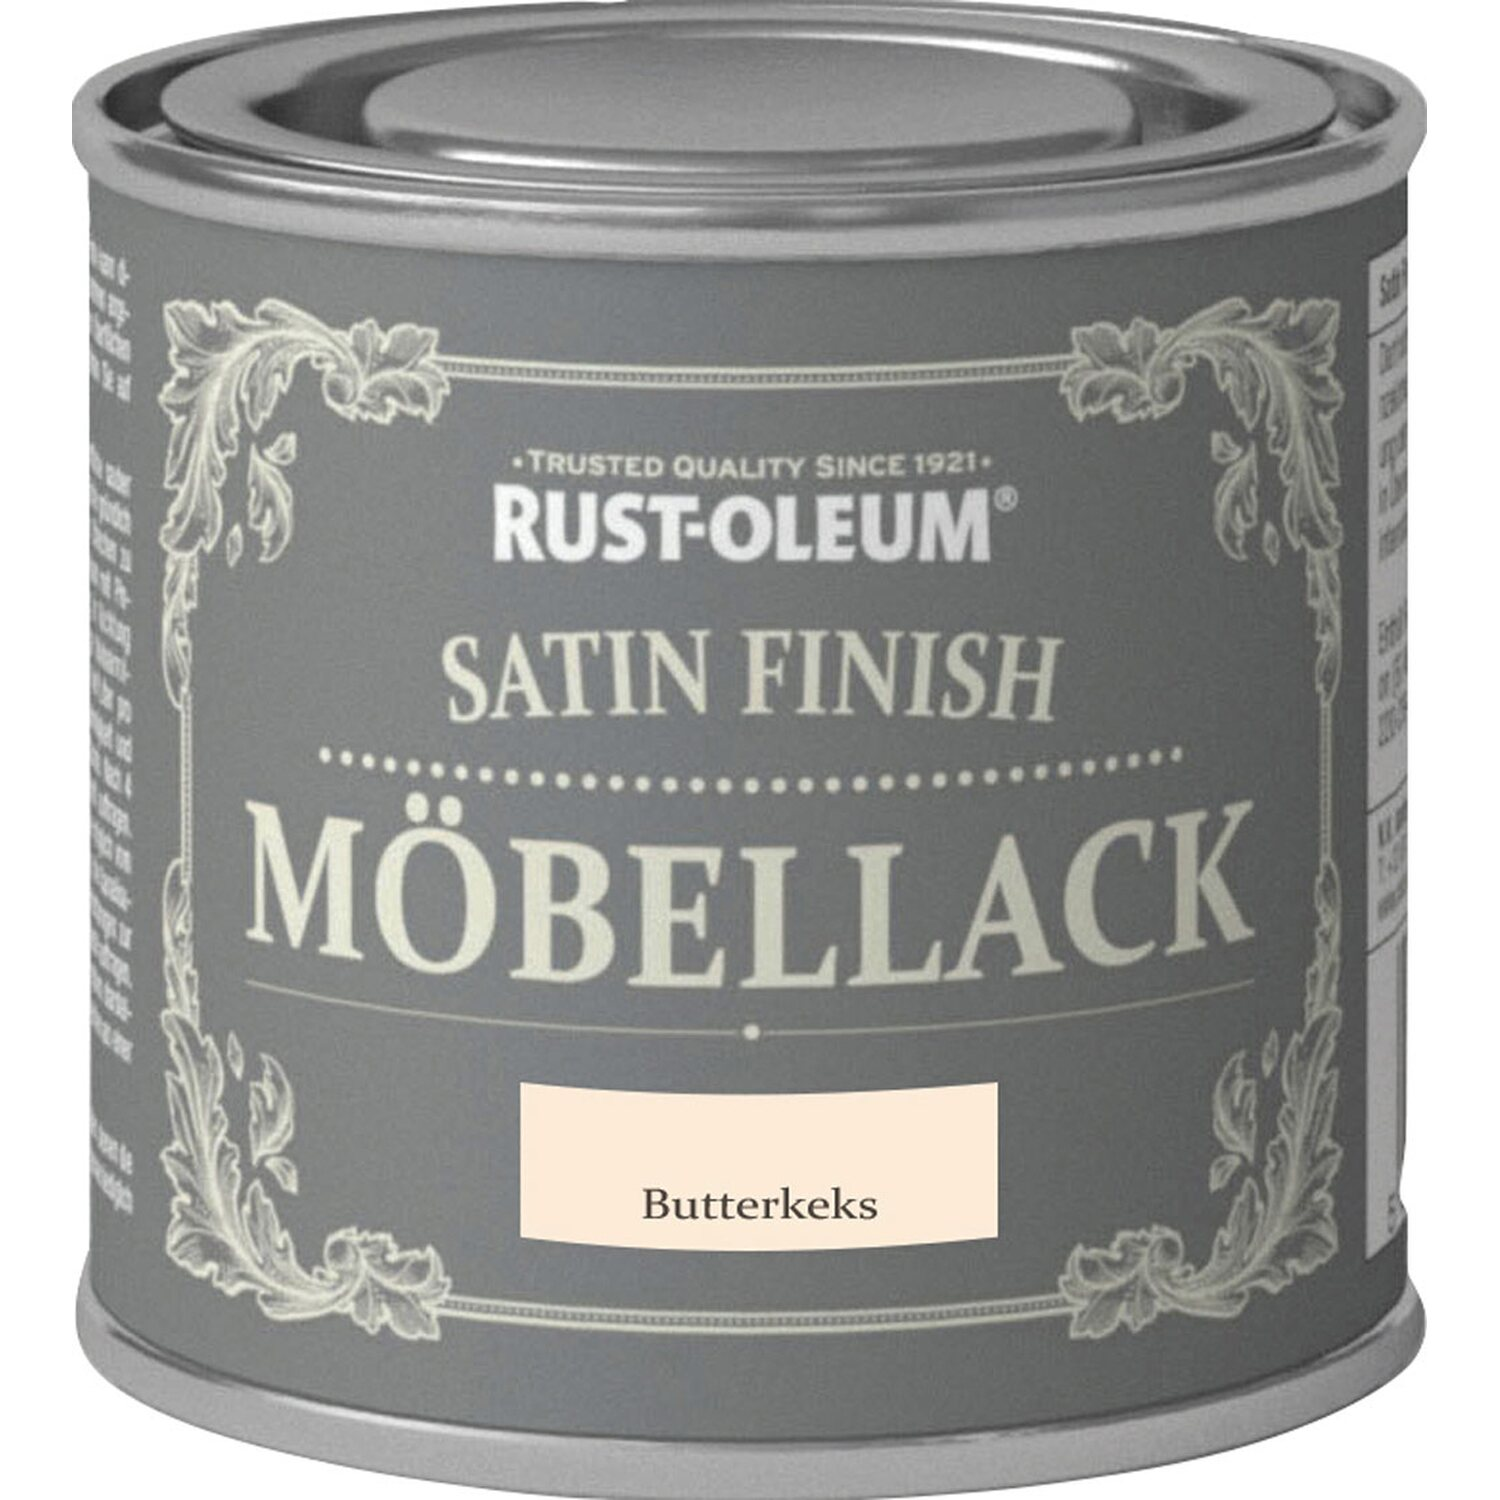 rust oleum kreidefarbe m bellack satin finish butterkeks. Black Bedroom Furniture Sets. Home Design Ideas